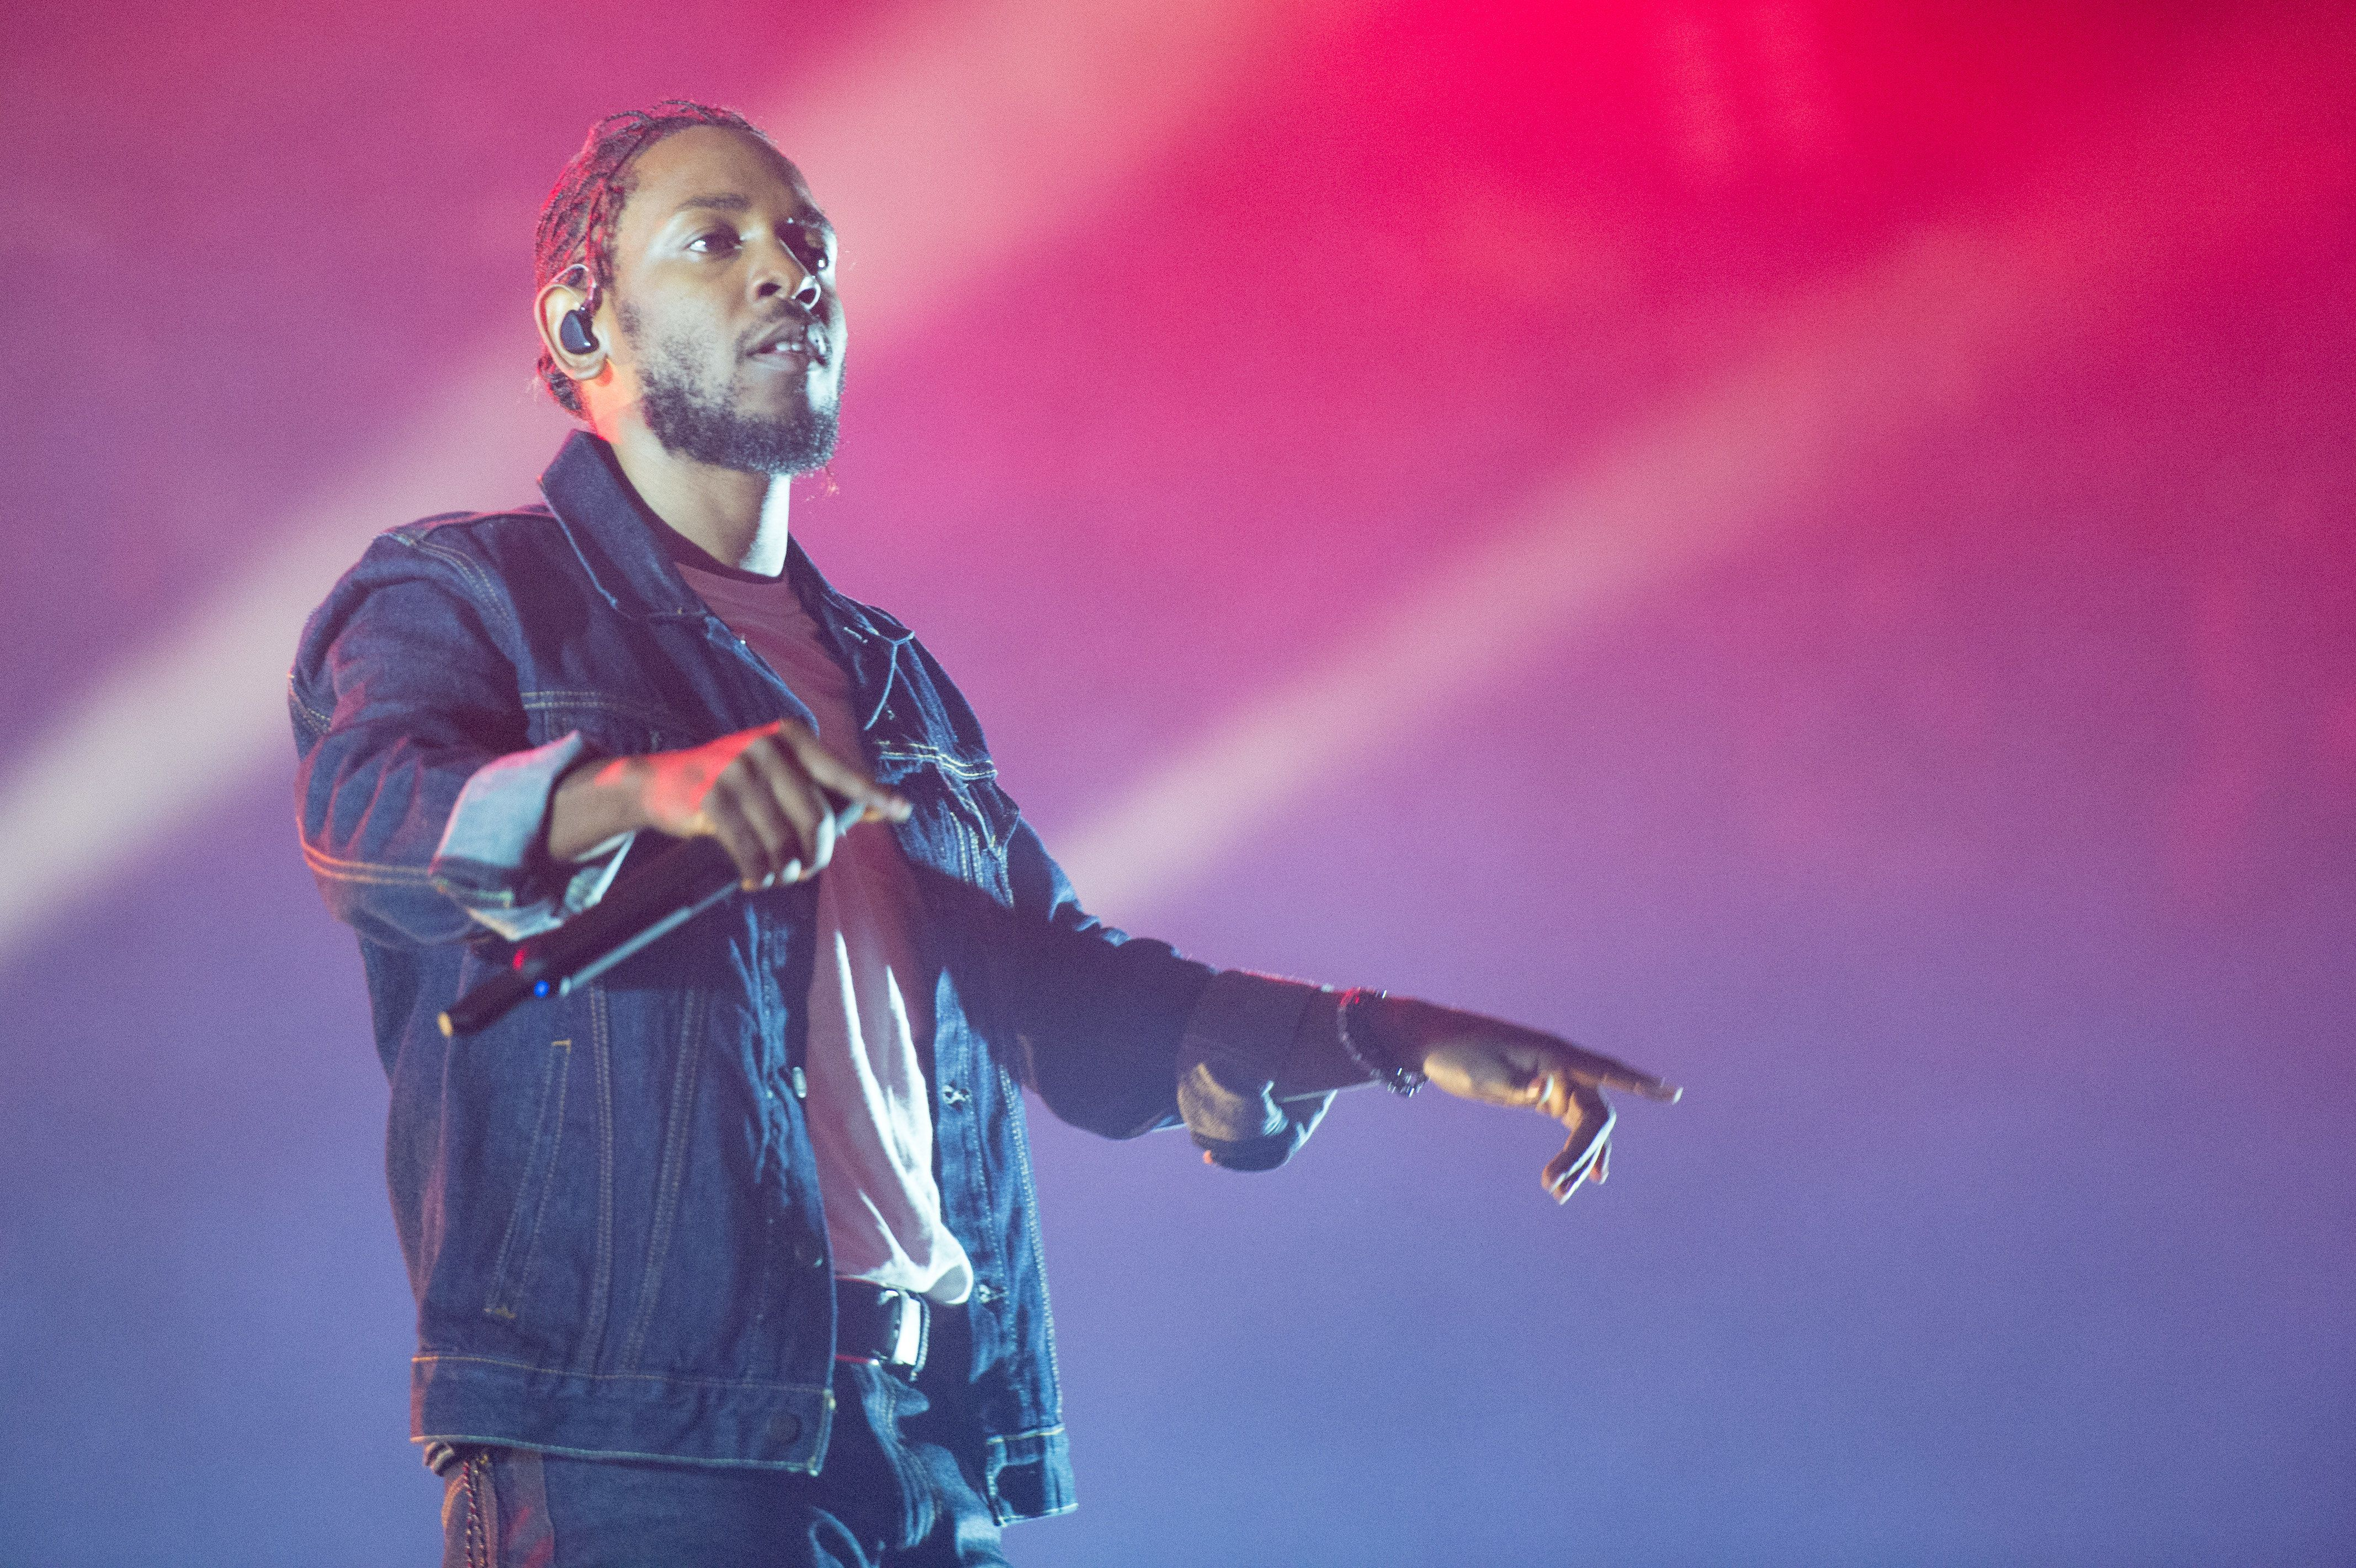 QUEBEC CITY, QC - JULY 07:  Kendrick Lamar performs onstage headlining Day 2 of the 50th Festival D'ete De Quebec on the main stage at the Plaines D'Abraham on July 7, 2017 in Quebec City, Canada.  (Photo by Ollie Millington/Redferns)